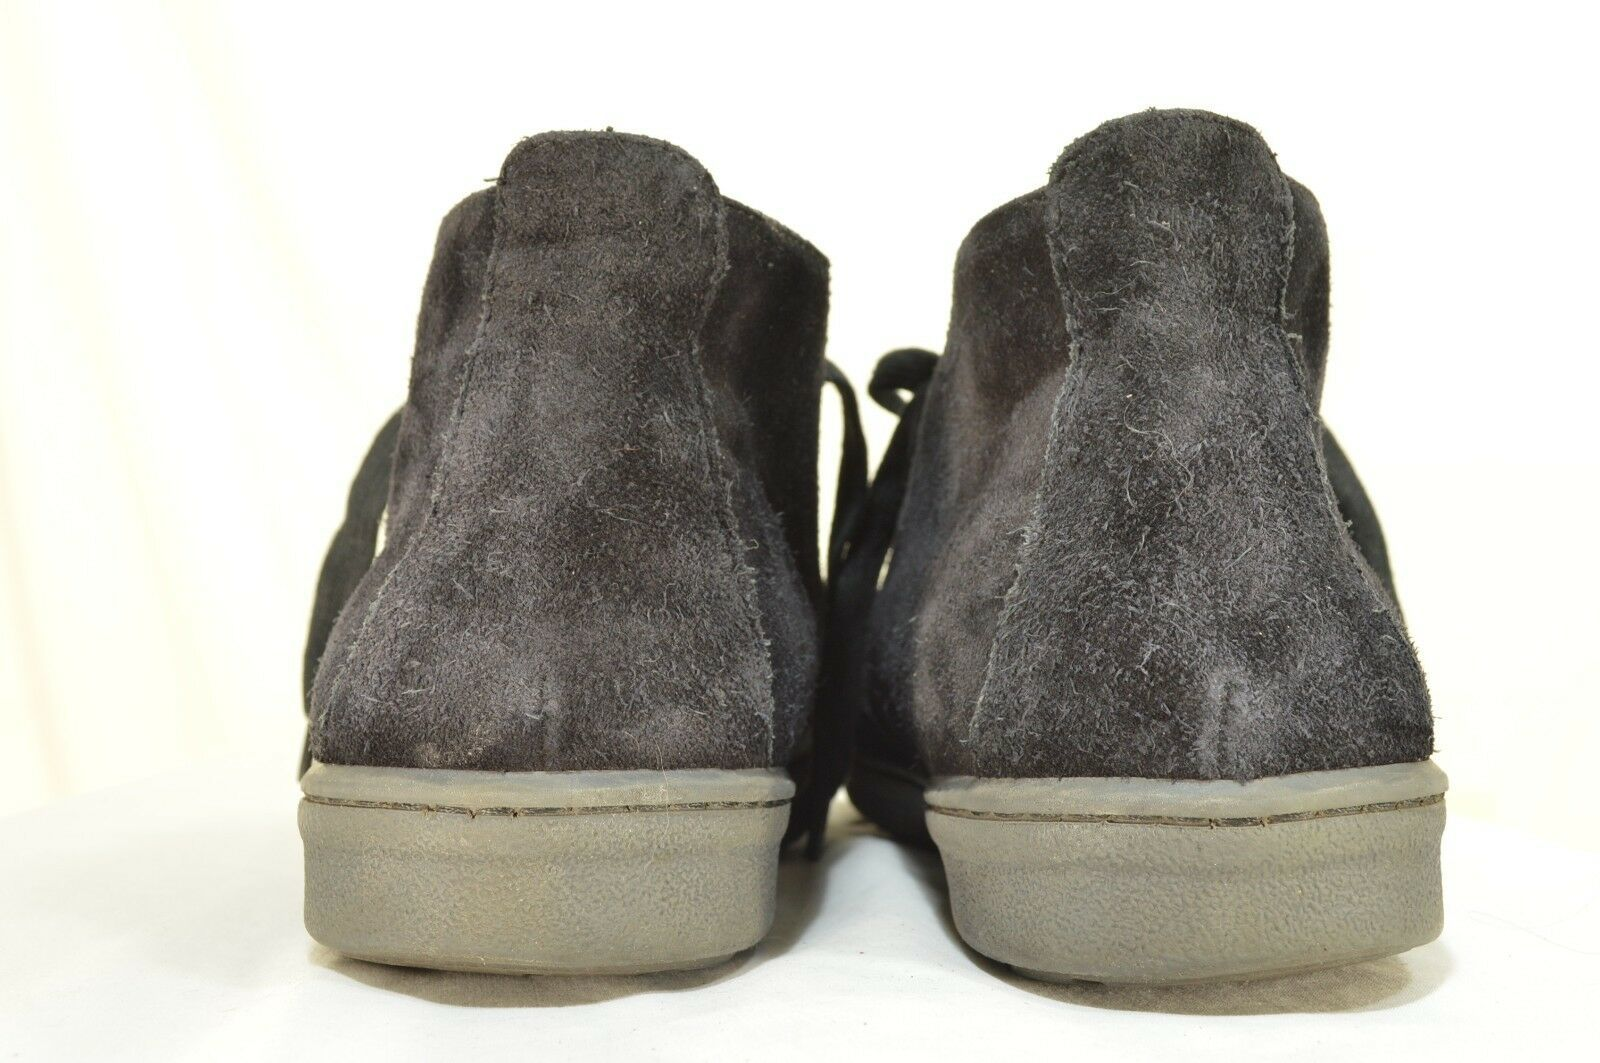 Vince shoes boots hi top US 8 EU 41 black suede leather upper leather lining image 8